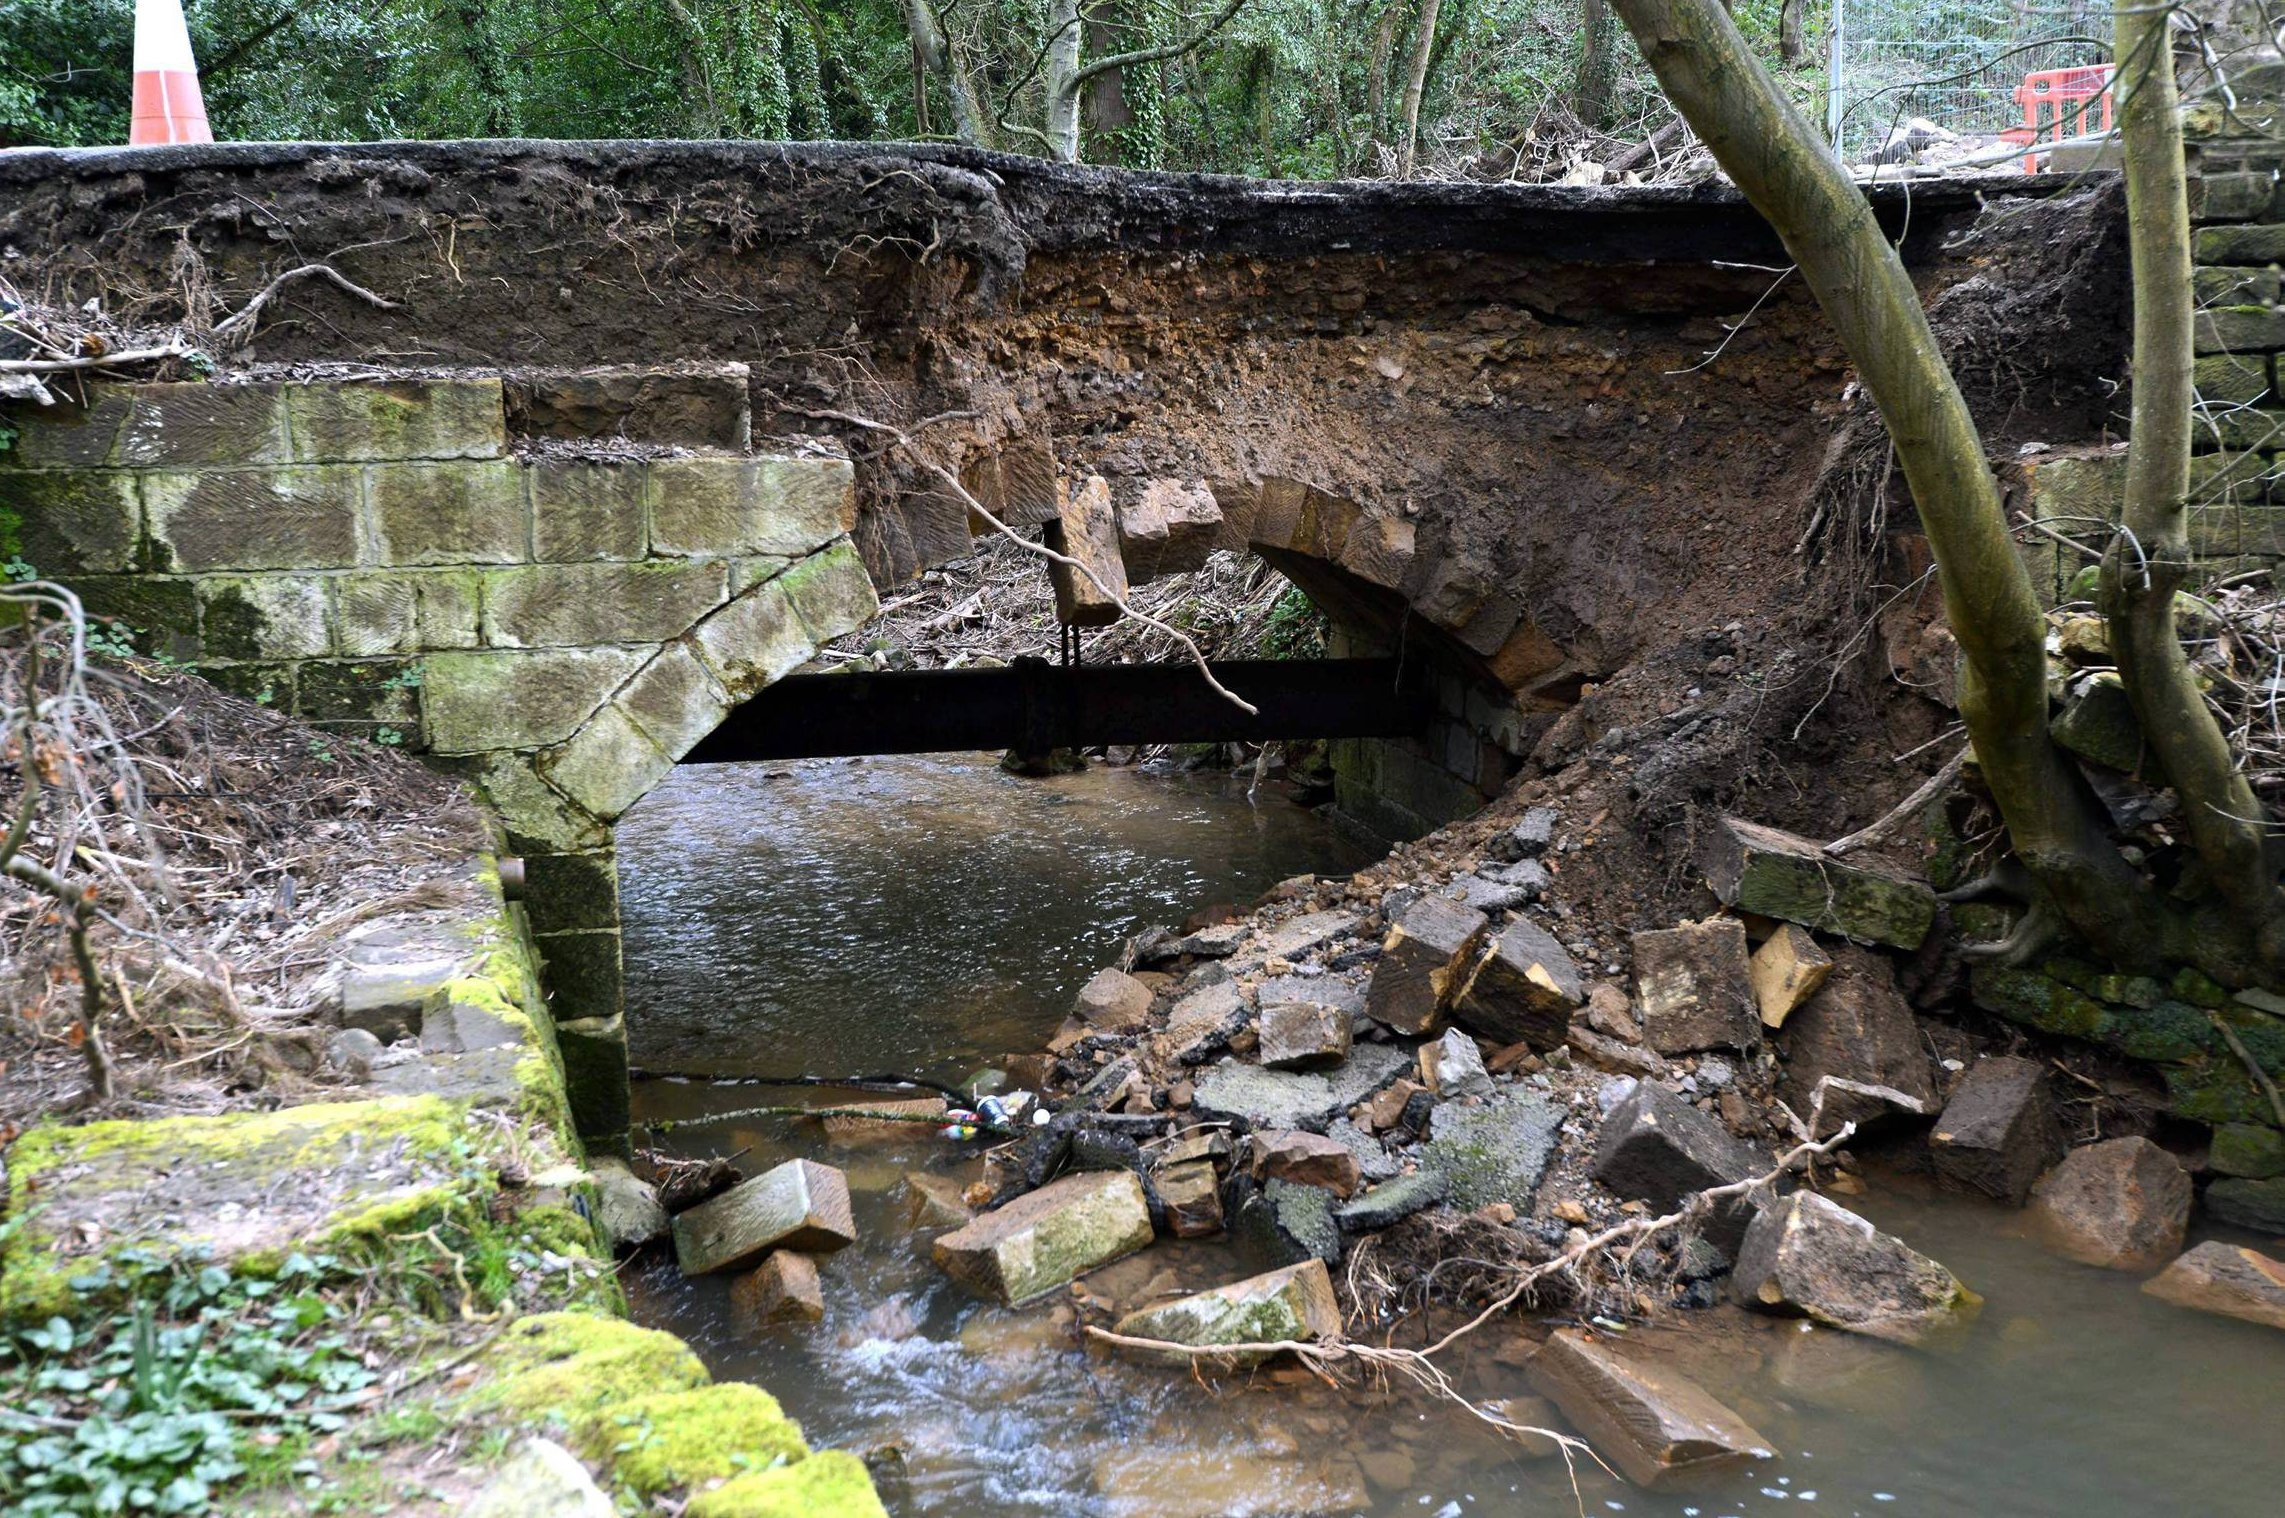 CAUSING PROBLEMS: The damaged bridge